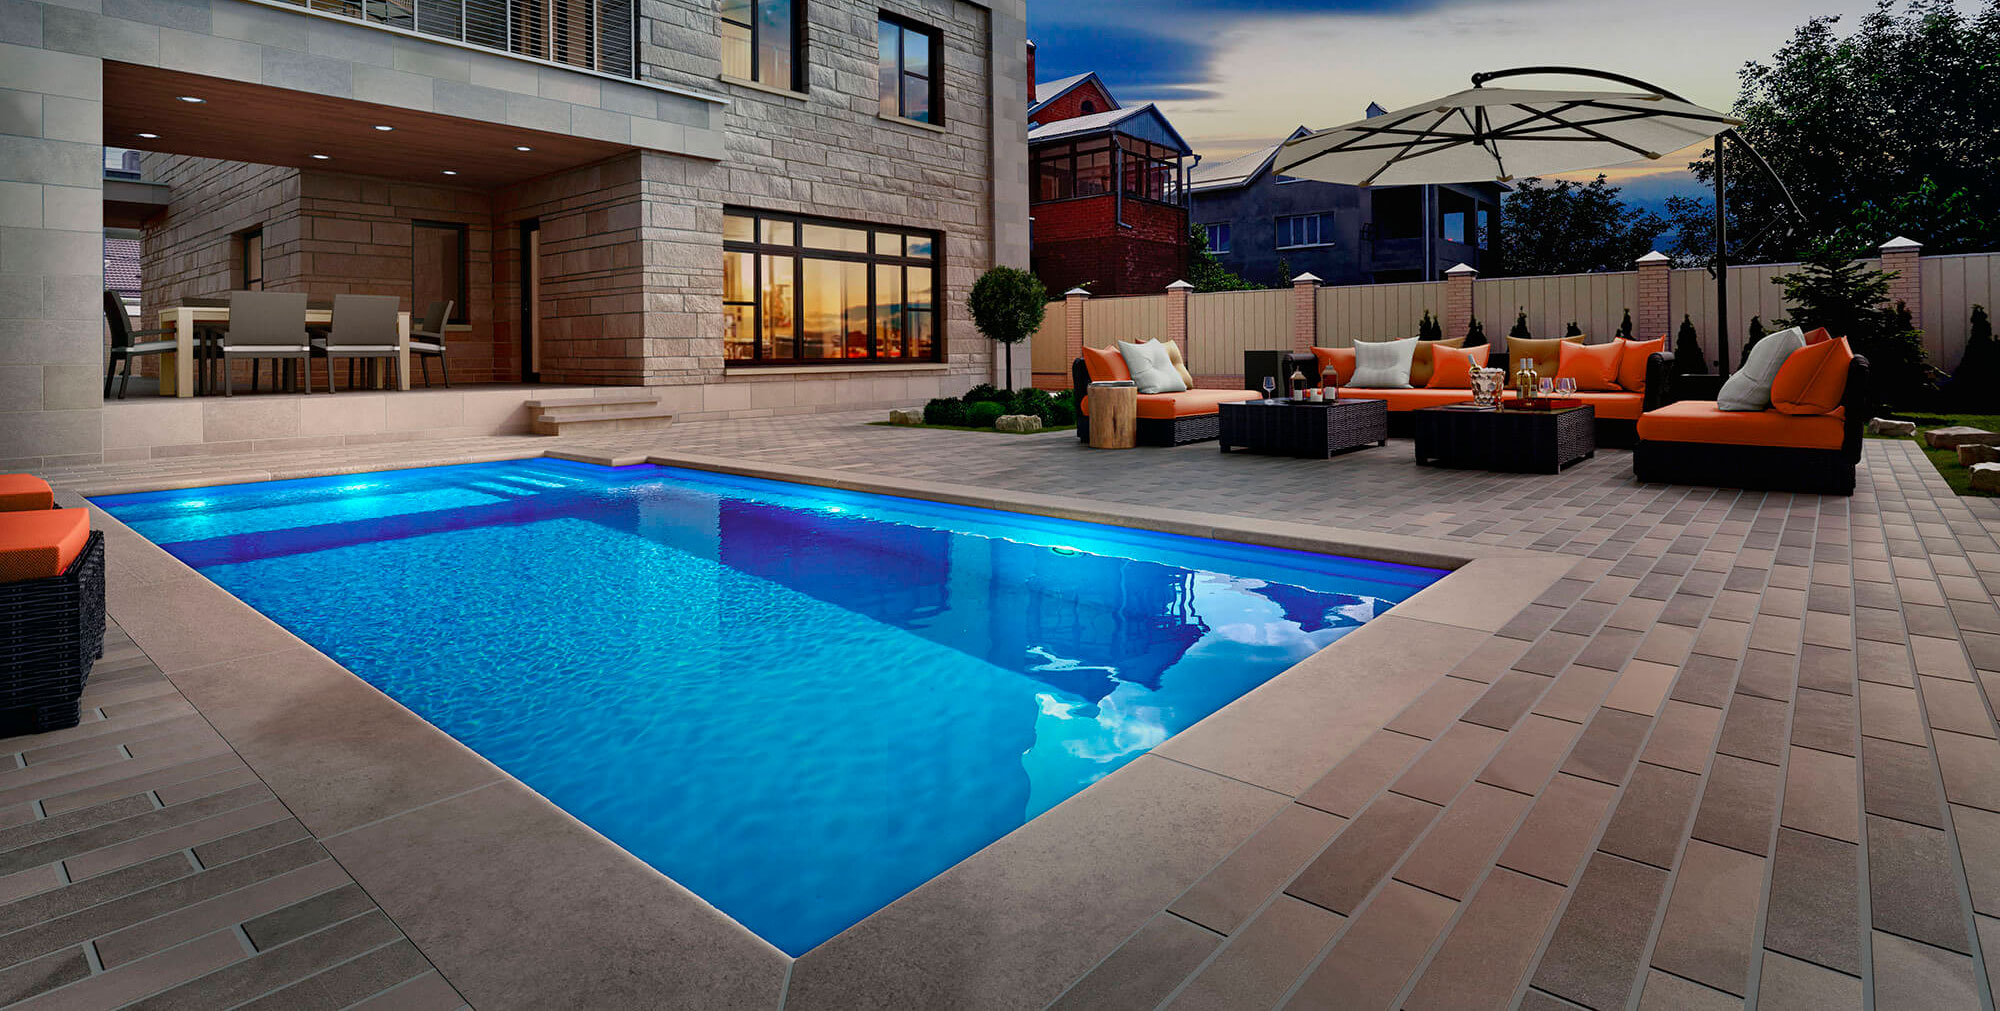 Pavers & Pool Coping - Polycor Hardscapes